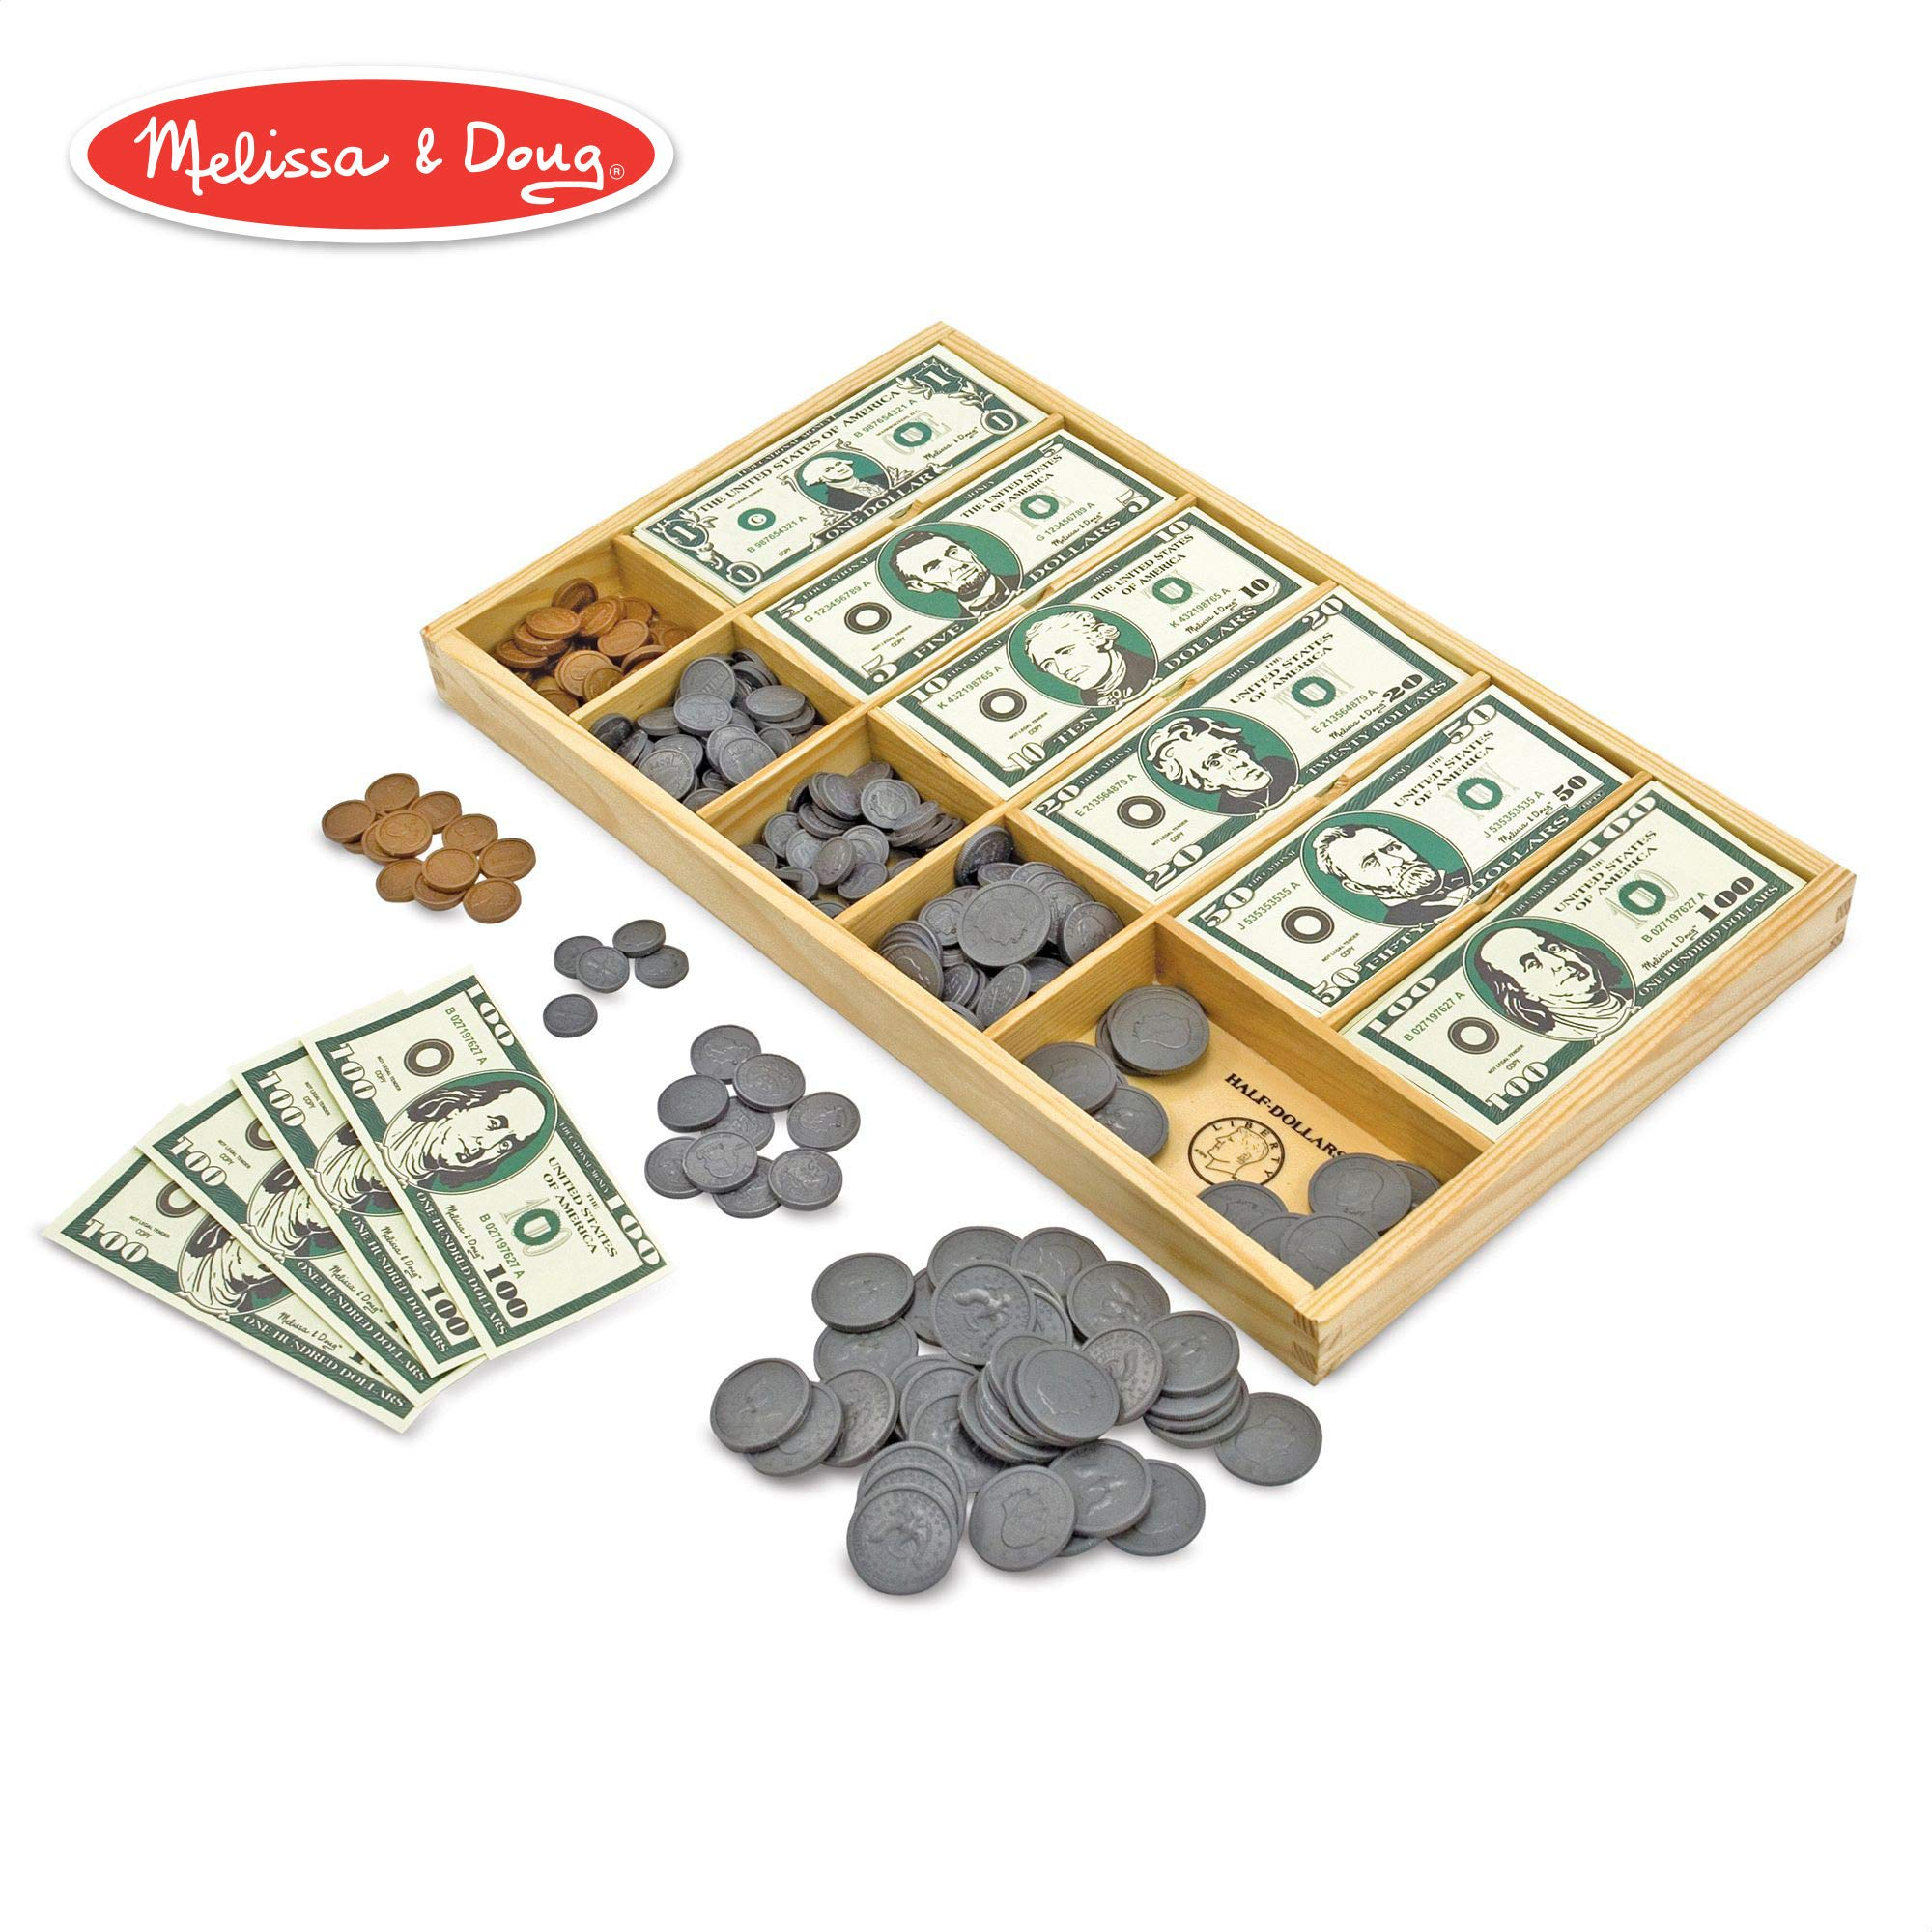 Melissa & Doug Classic Play Money Set (Developmental Toys, 50 of Each Denomination, Wooden Cash Drawer) by Melissa & Doug